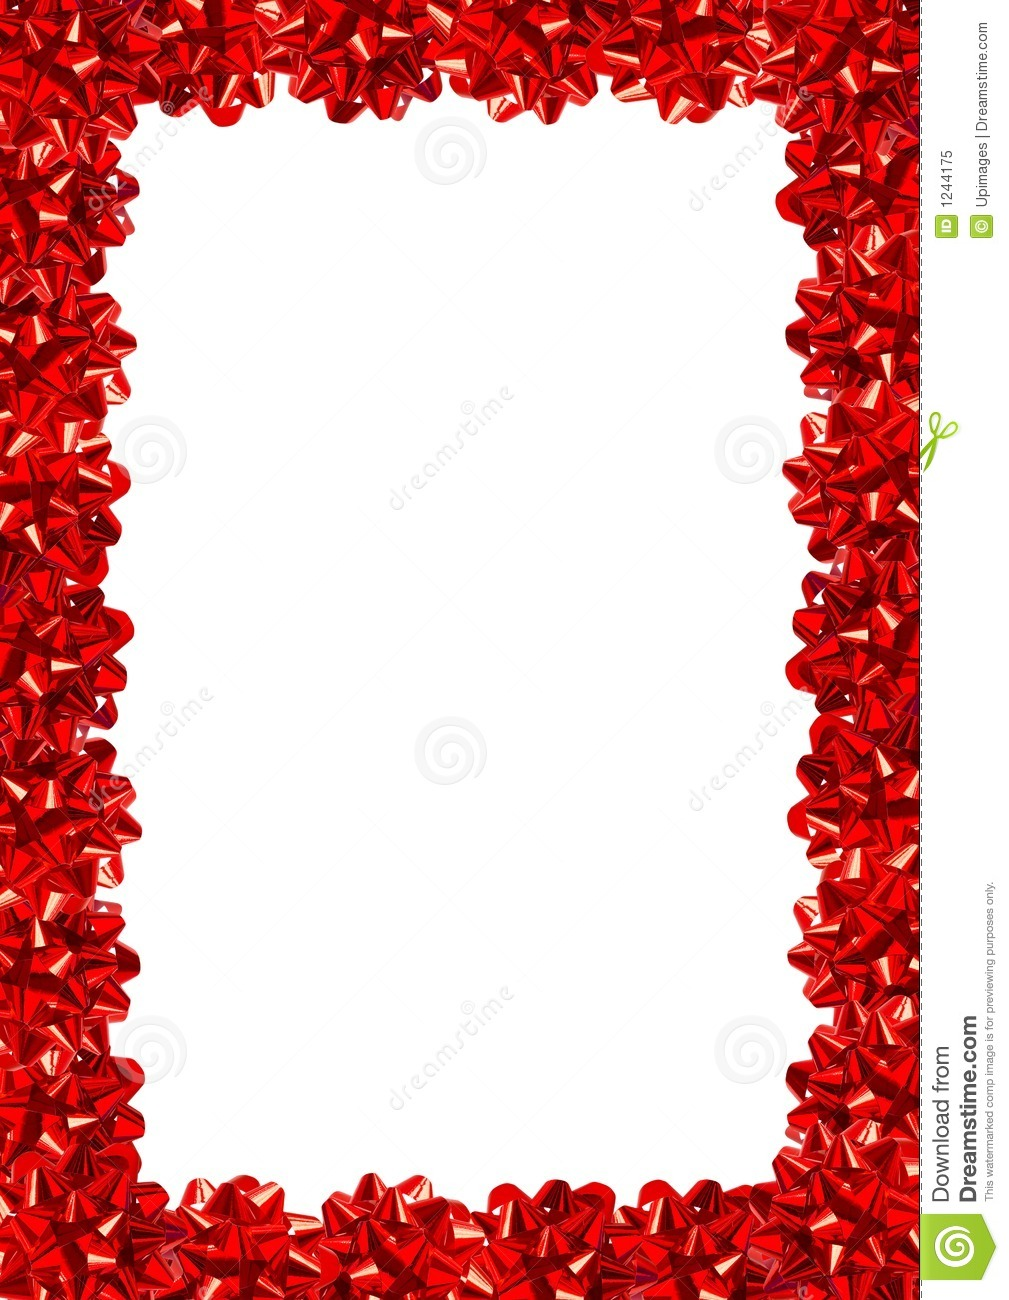 Red Gift Bows Border (with clipping path for easy background removing ...